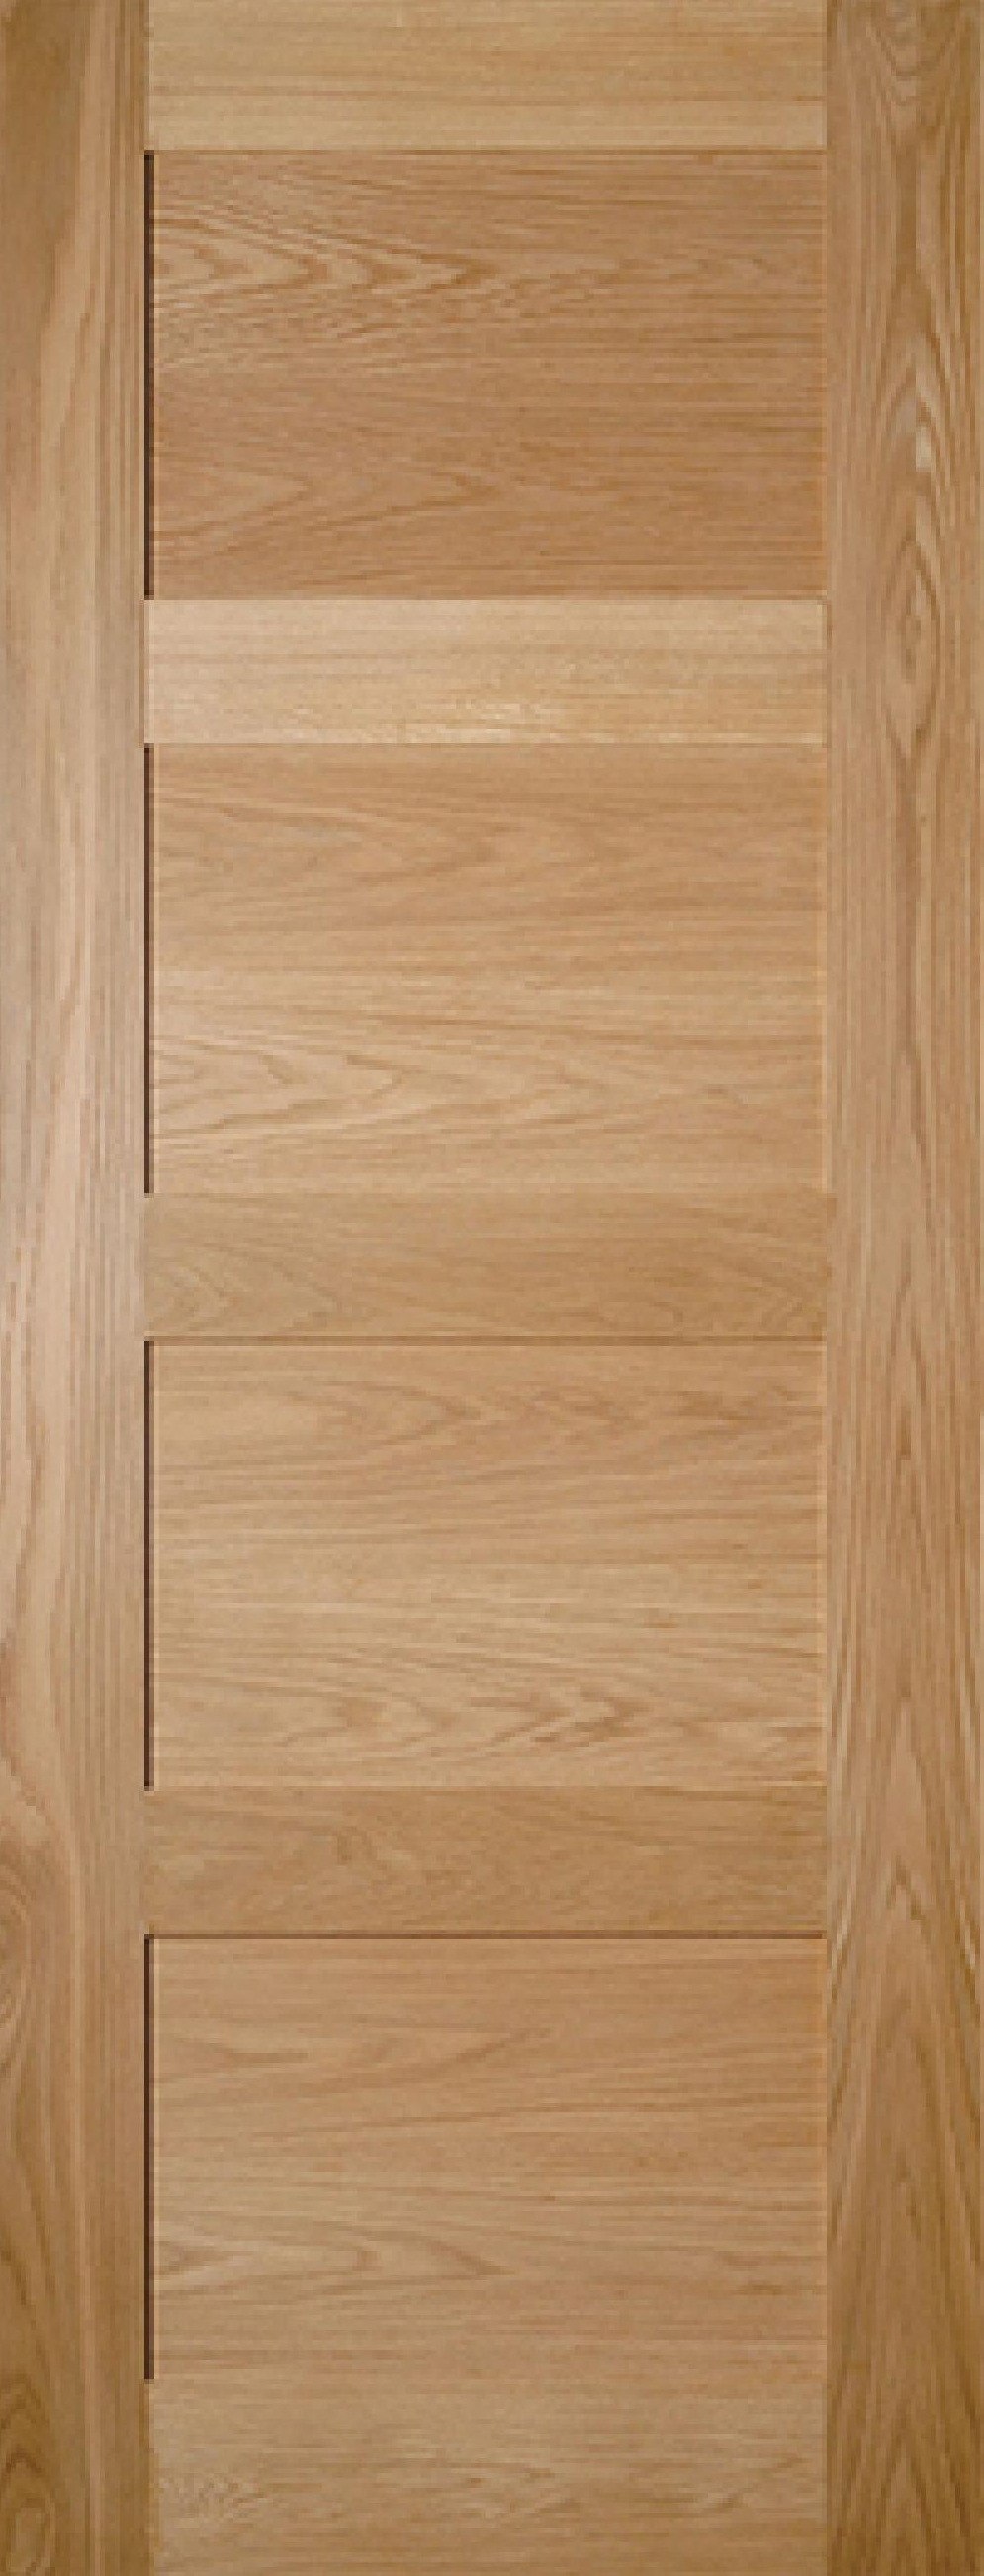 Coventry Oak Shaker:  Image